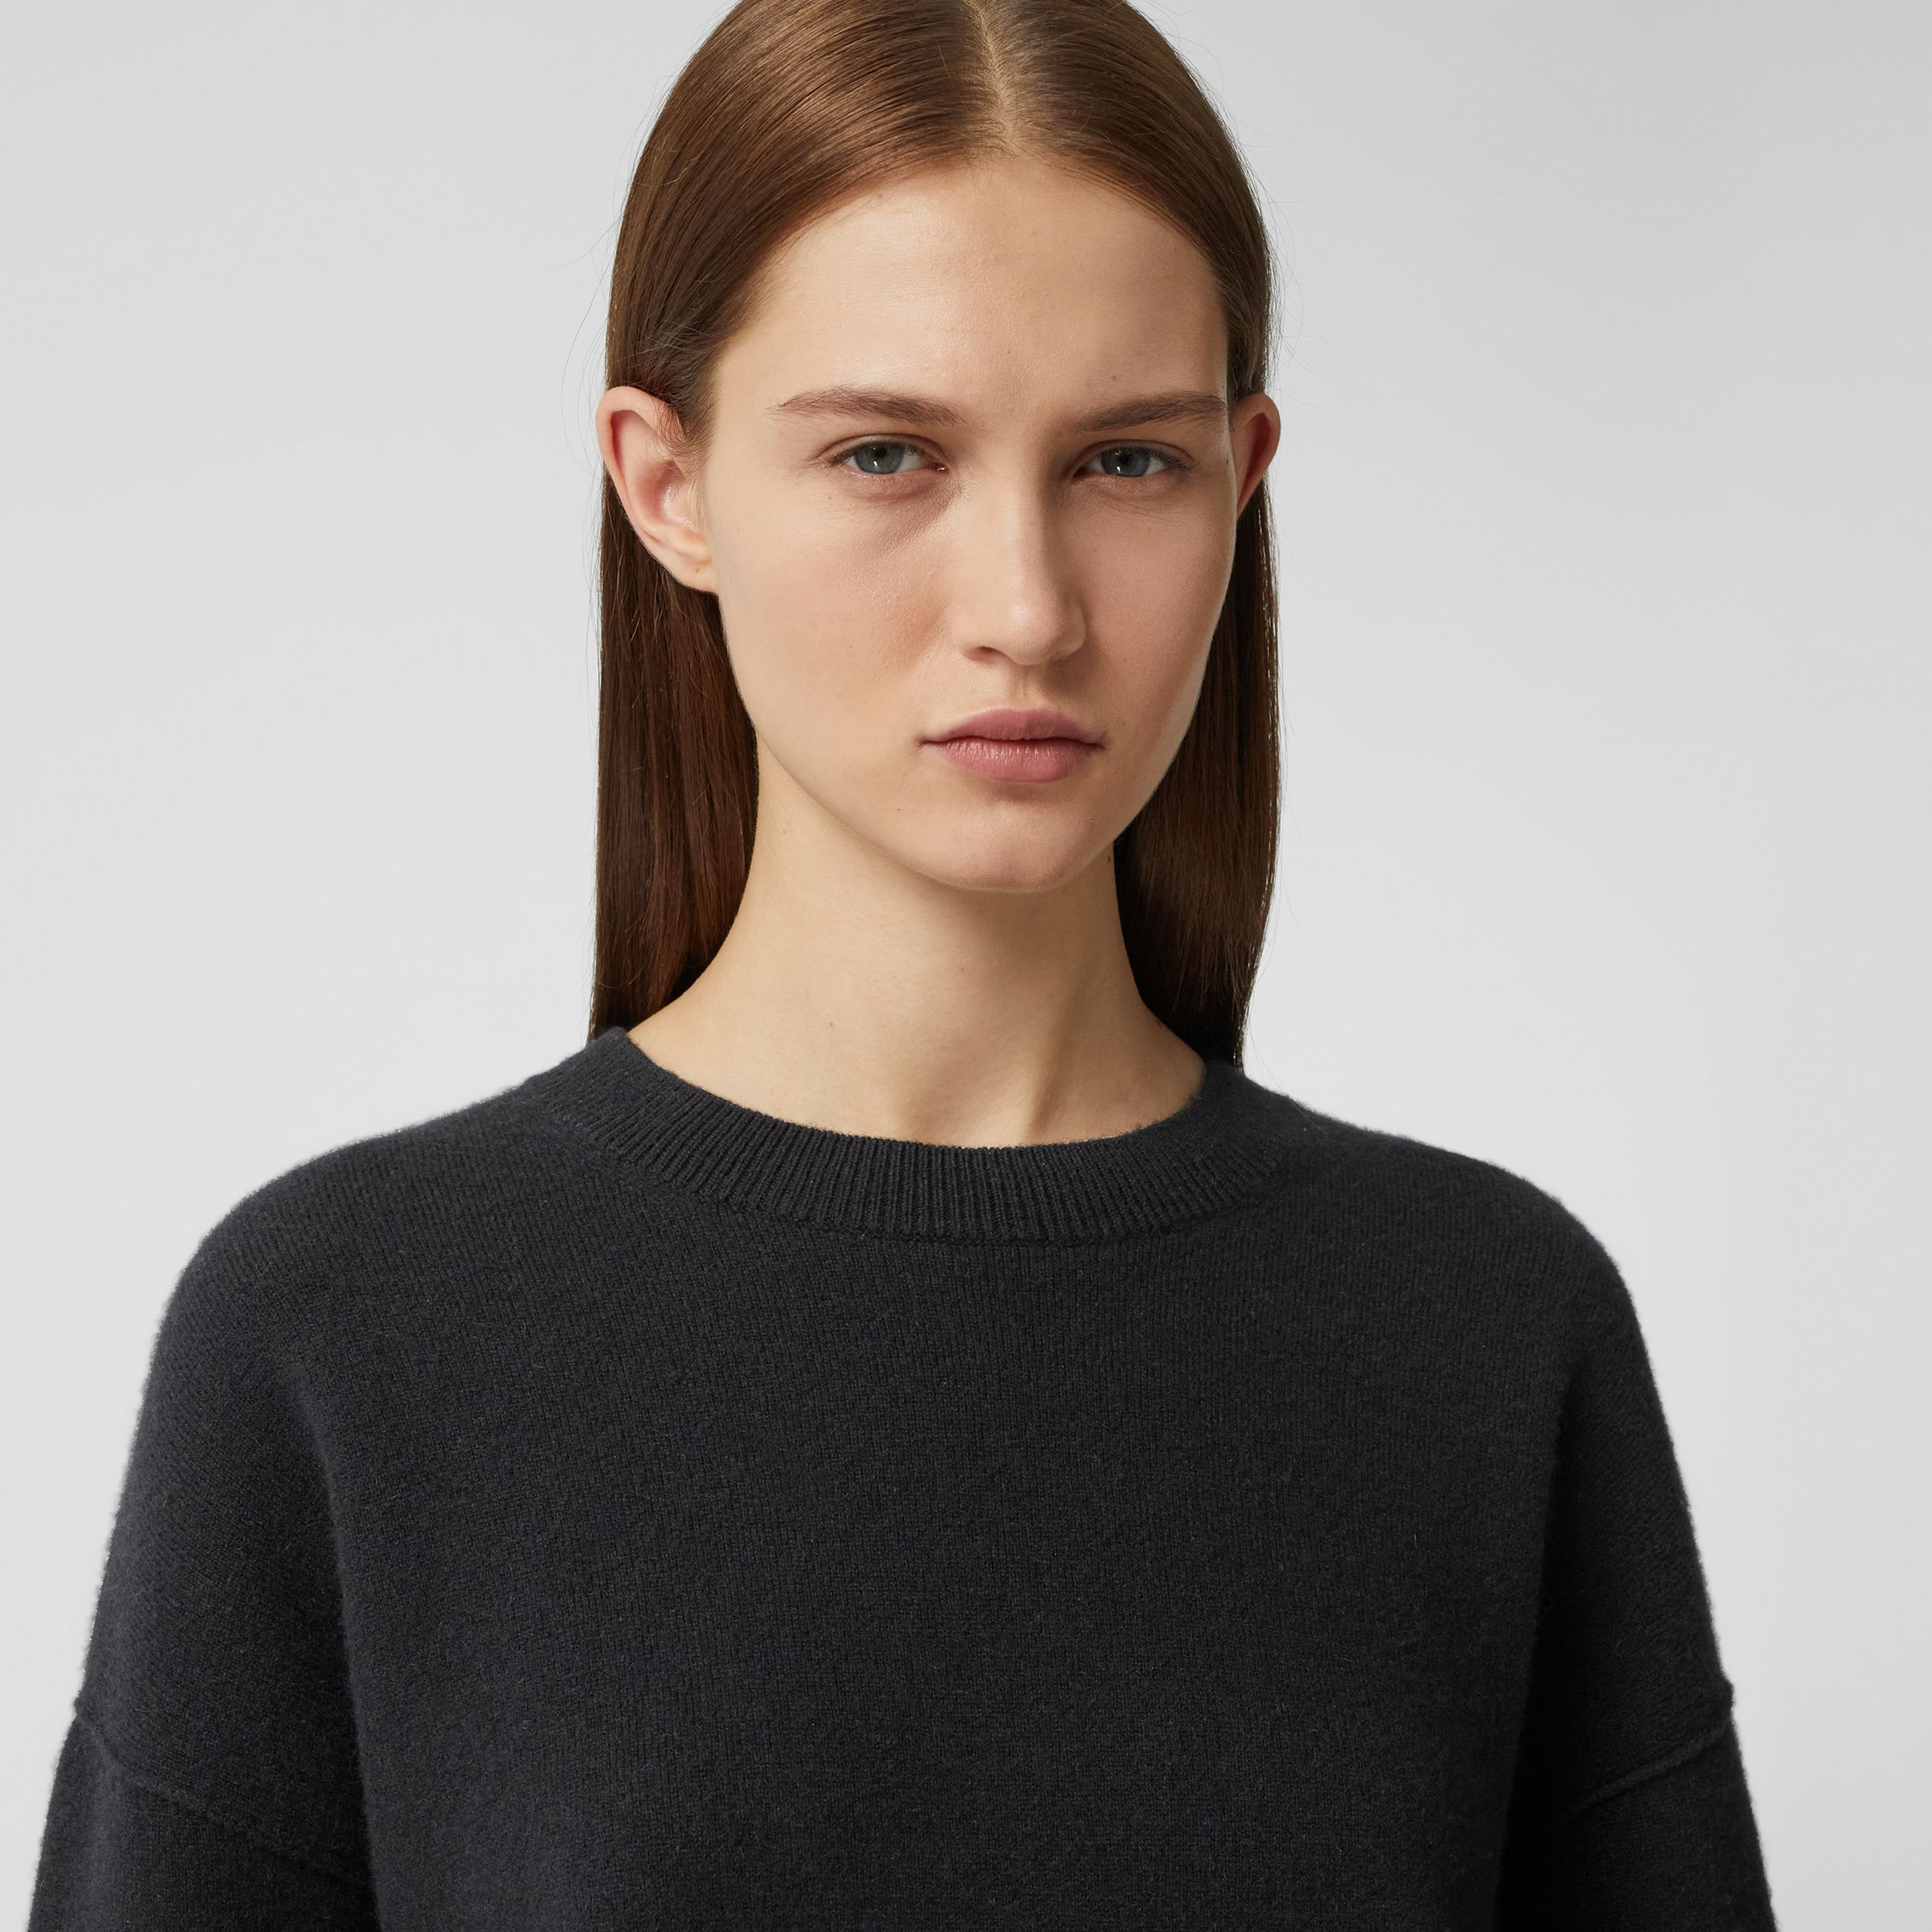 Monogram Motif Cashmere Blend Sweater in Black - Women | Burberry - 2